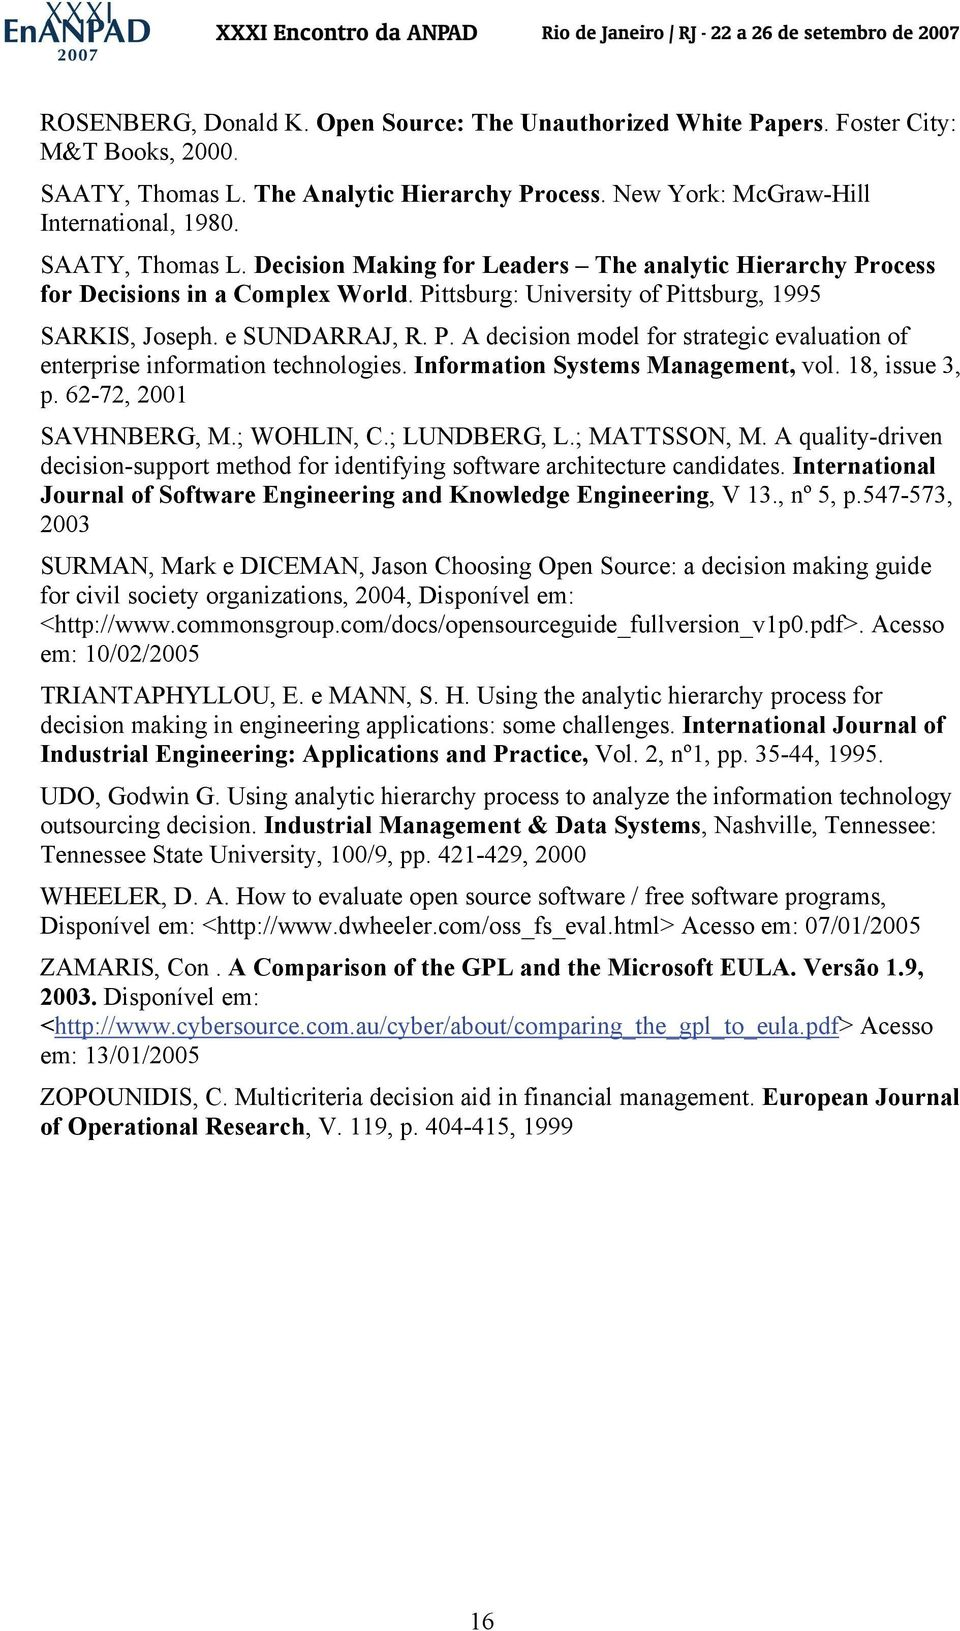 Information Systems Management, vol. 18, issue 3, p. 62-72, 2001 SAVHNBERG, M.; WOHLIN, C.; LUNDBERG, L.; MATTSSON, M.